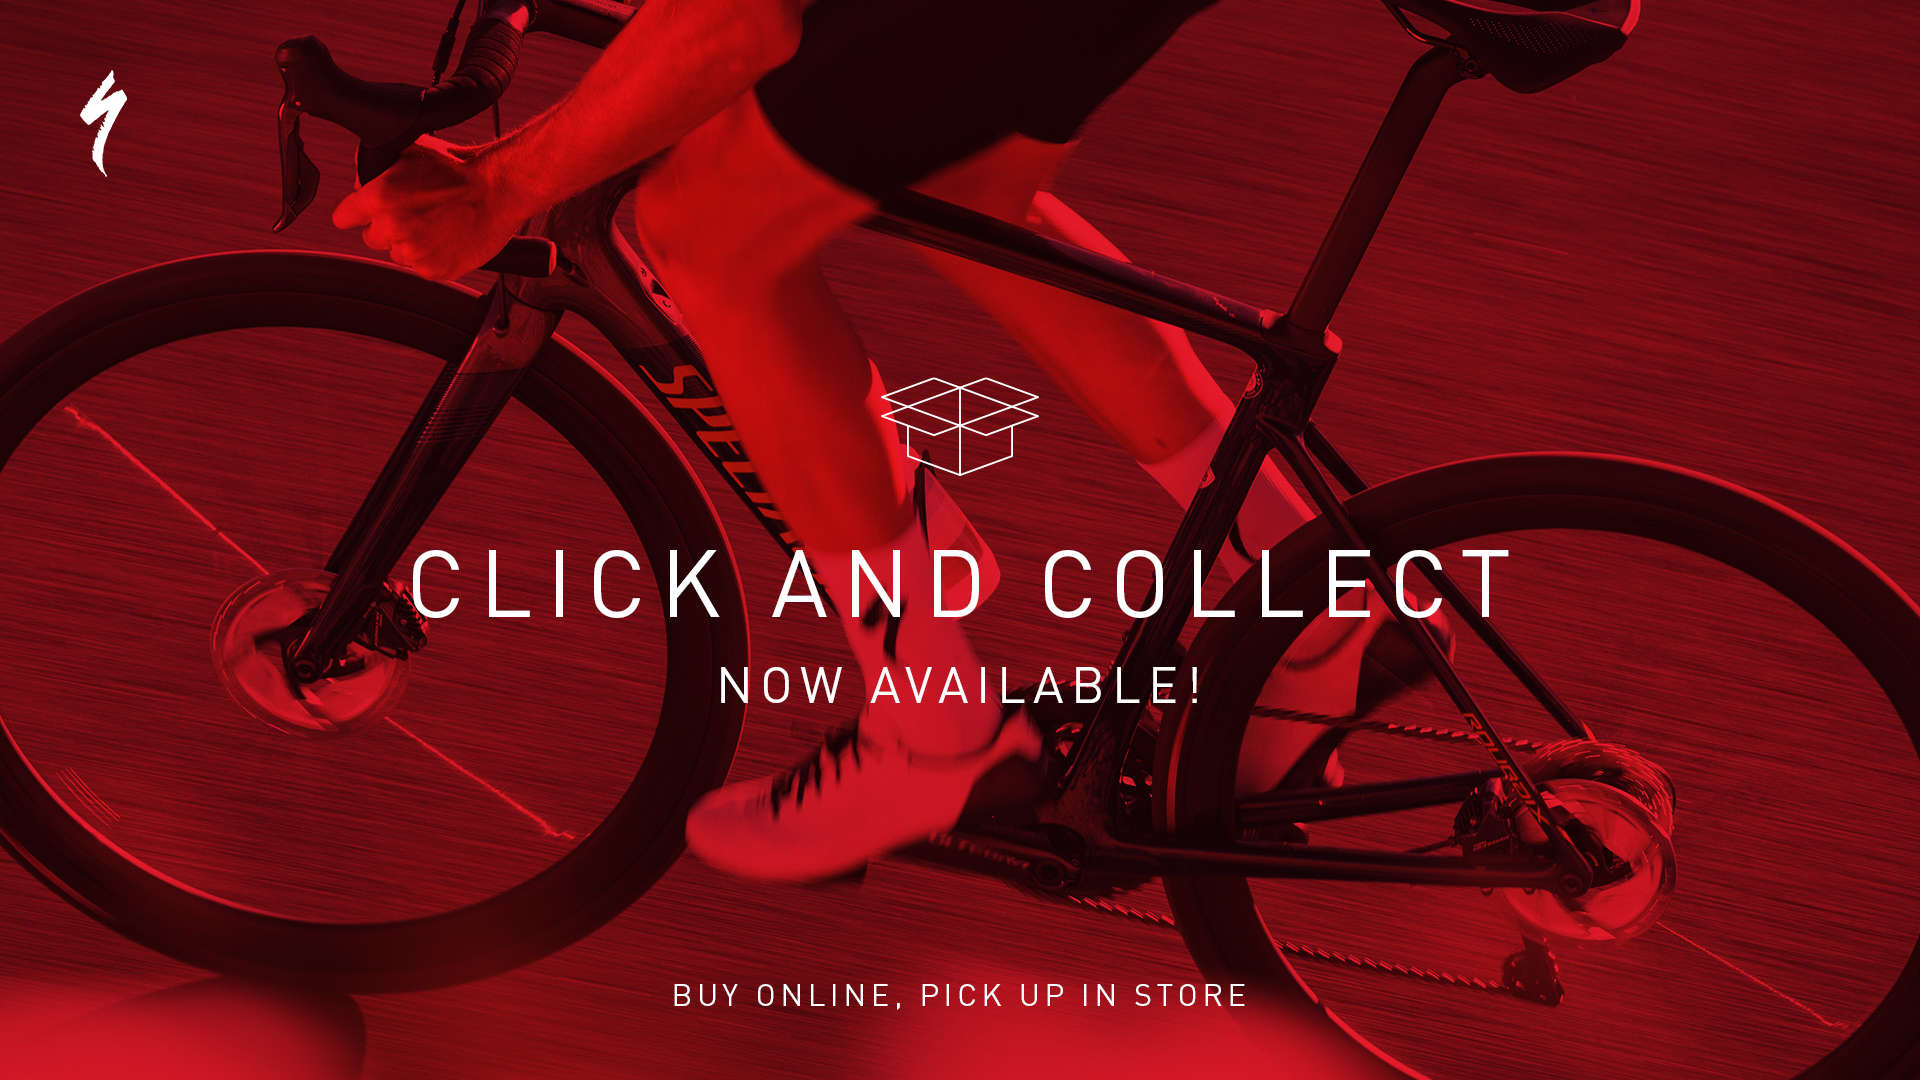 Click and Collect now available - Buy Online Pickup at Store